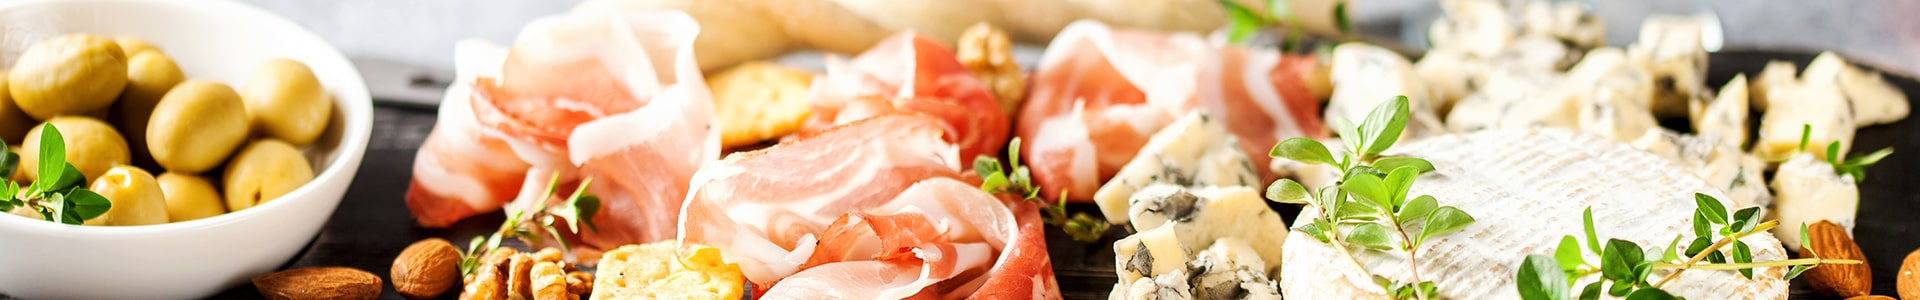 Header - Charcuterie fromage